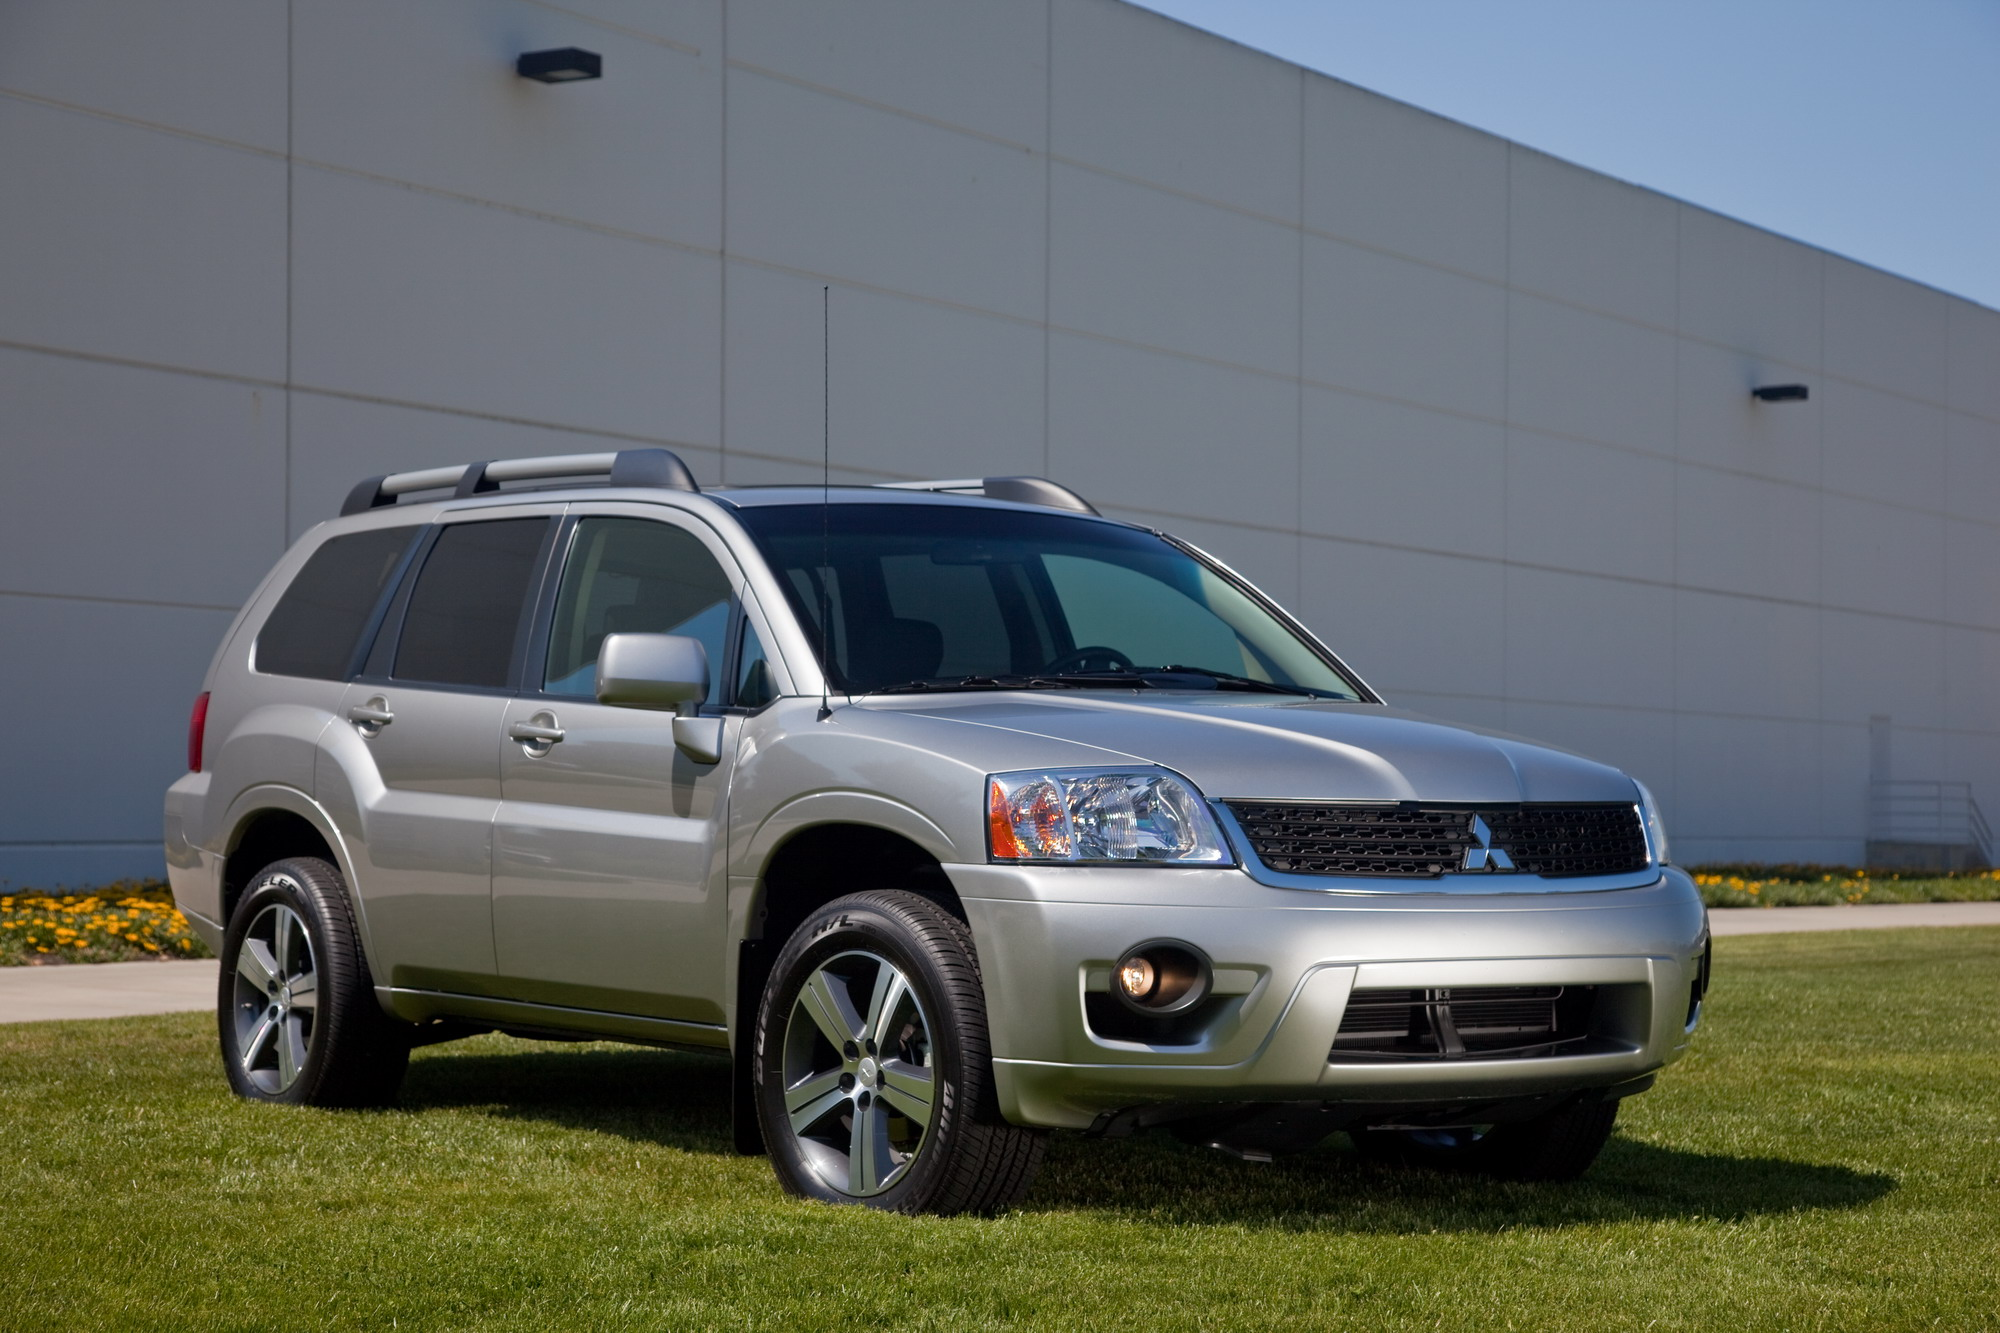 2011 mitsubishi endeavor review top speed. Black Bedroom Furniture Sets. Home Design Ideas